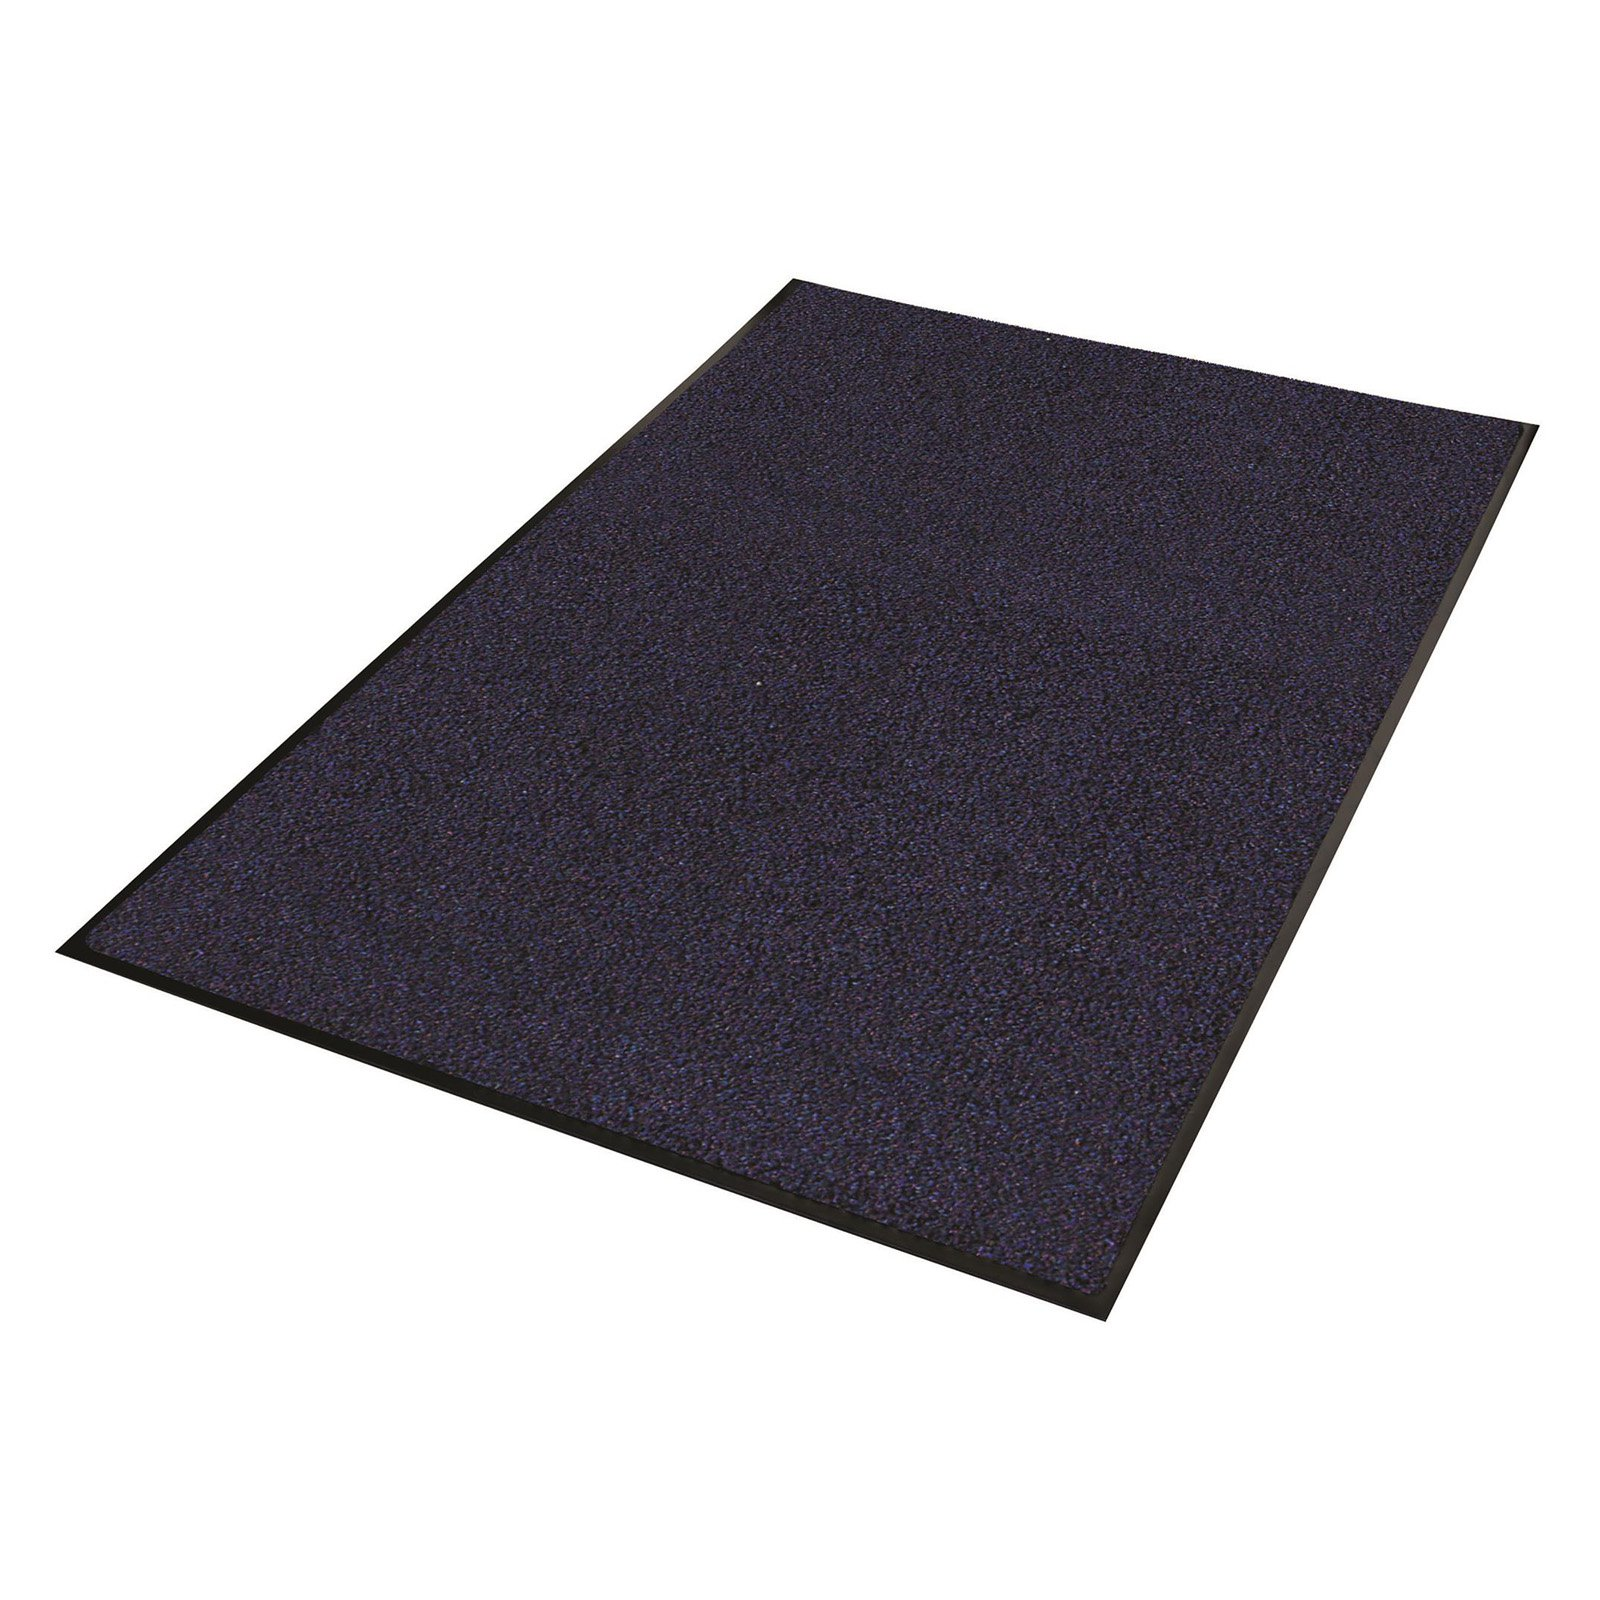 Rubber with Nylon Carpet Burgundy Guardian Platinum Series Indoor Wiper Floor Mat 6x7